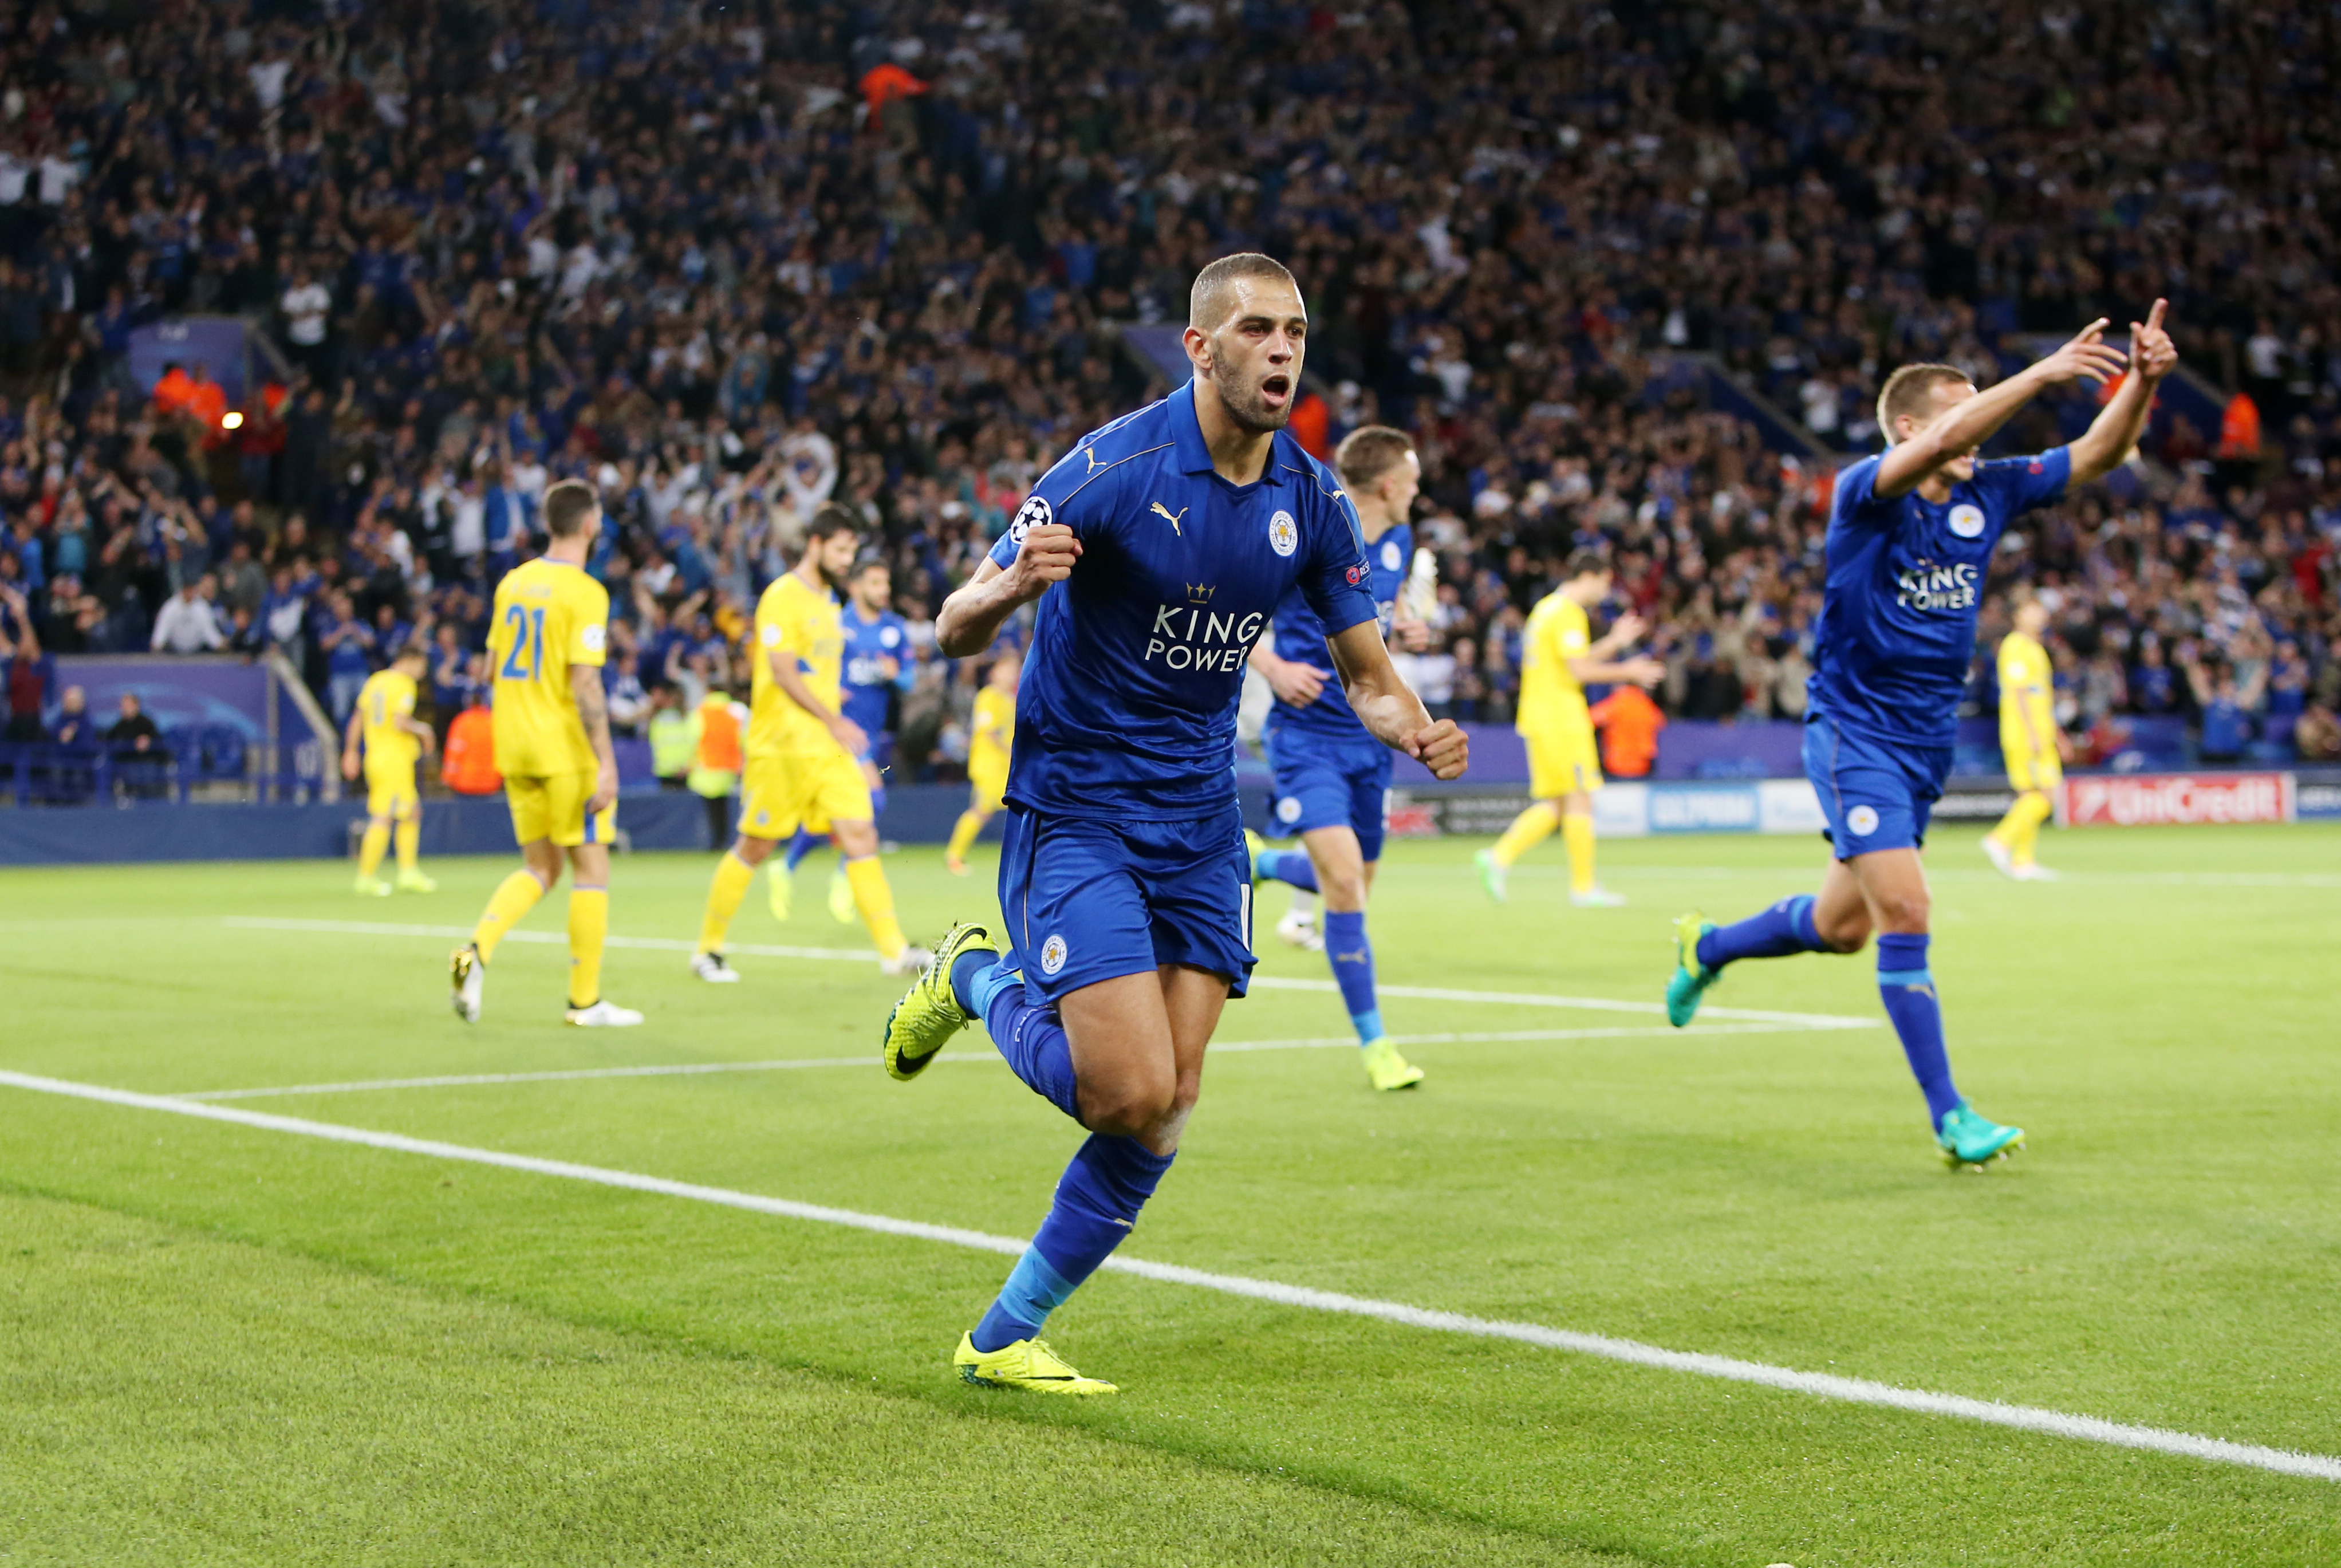 leicester city - photo #32